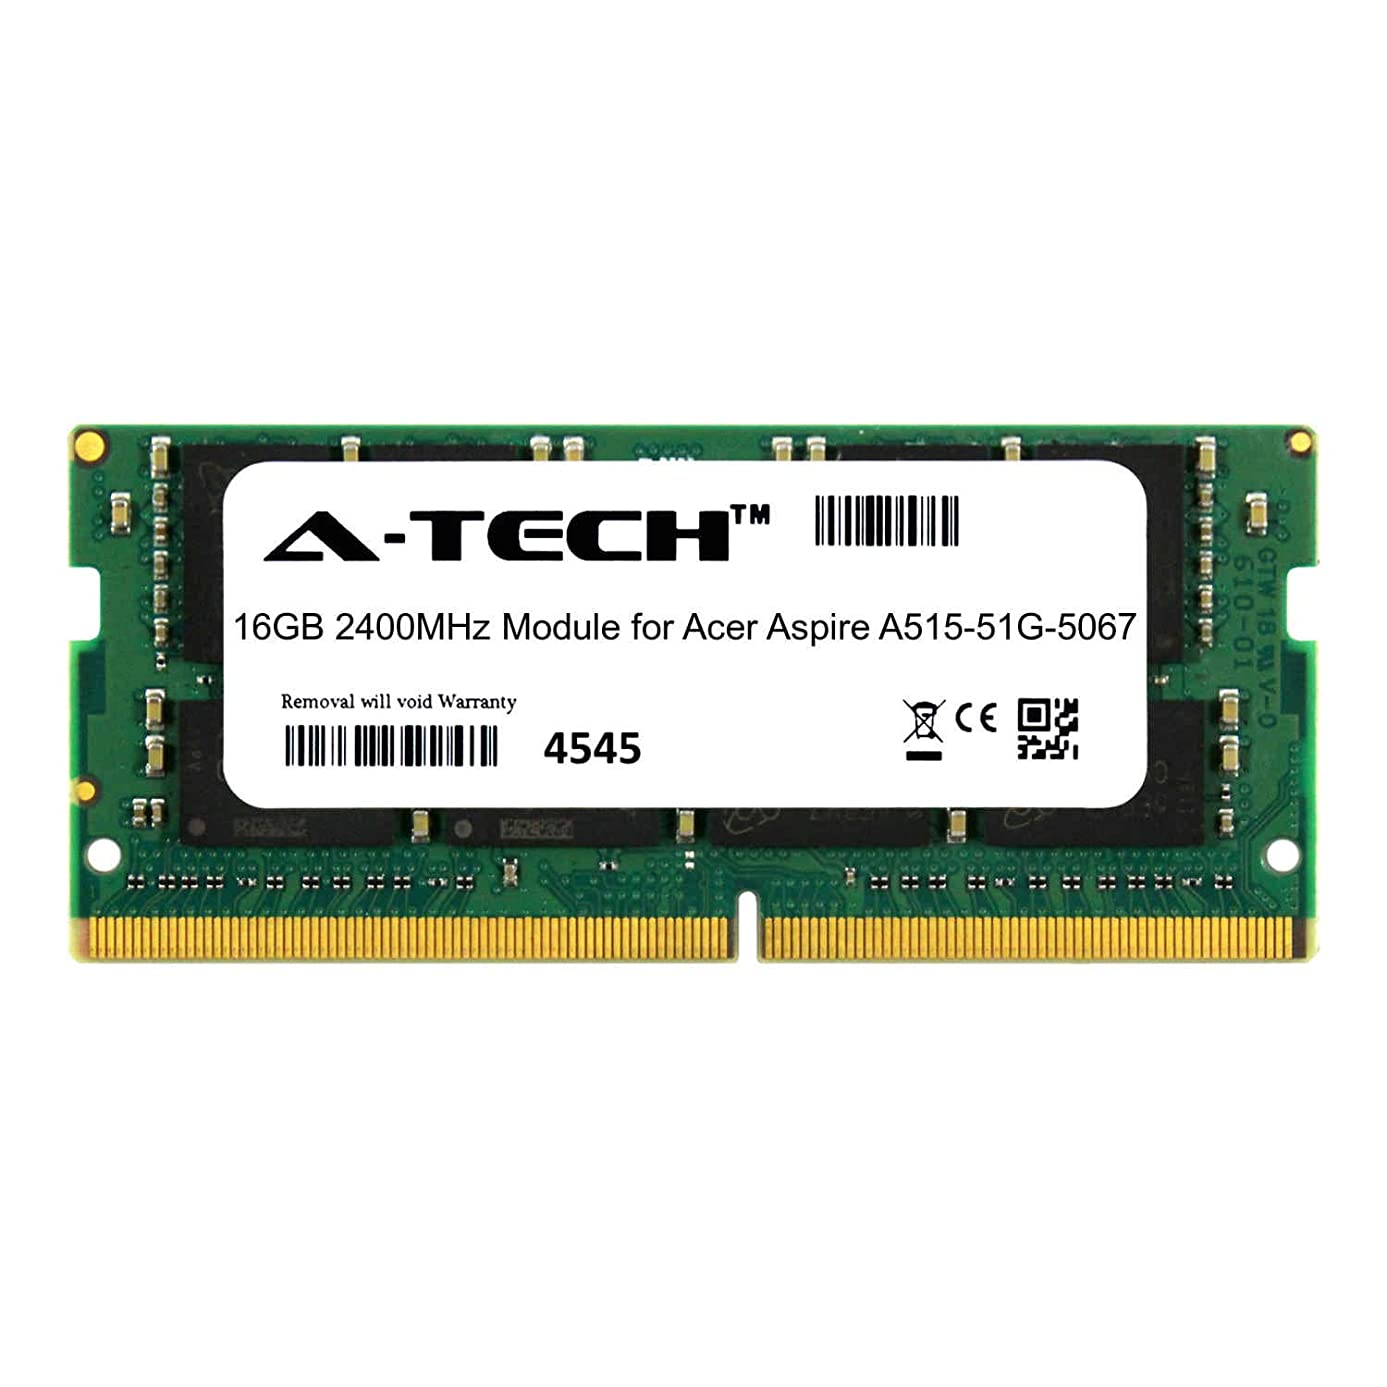 A-Tech 16GB Module for Acer Aspire A515-51G-5067 Laptop & Notebook Compatible DDR4 2400Mhz Memory Ram (ATMS267438A25831X1)